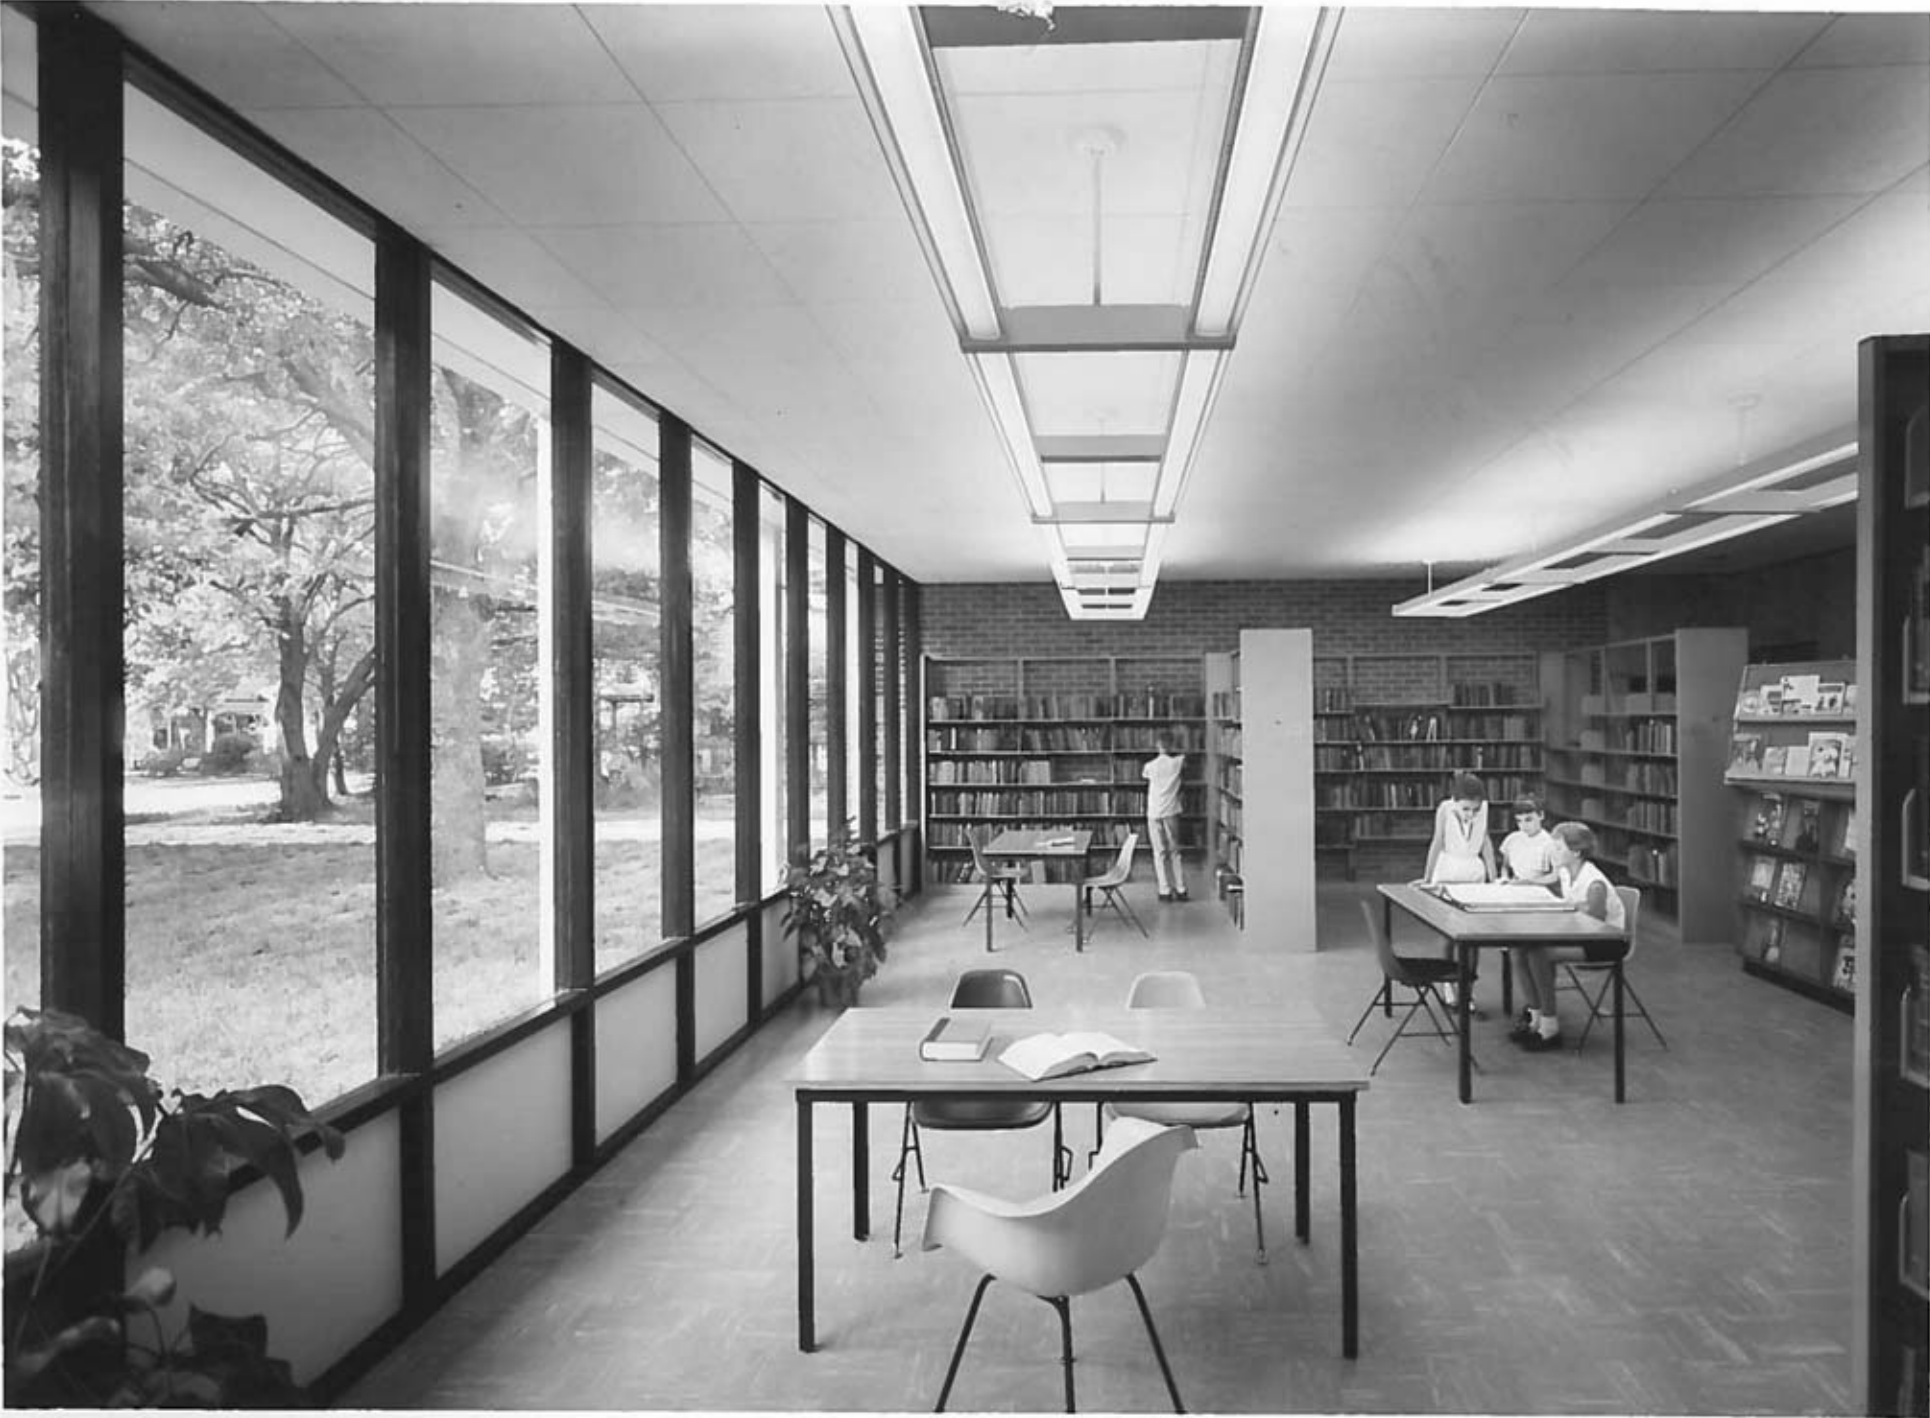 John Desmond, interior, miller memorial library, 1957,hammond, la,John Desmond Papers, Louisiana and Lower Mississippi Valley Collections, LSU Libraries.